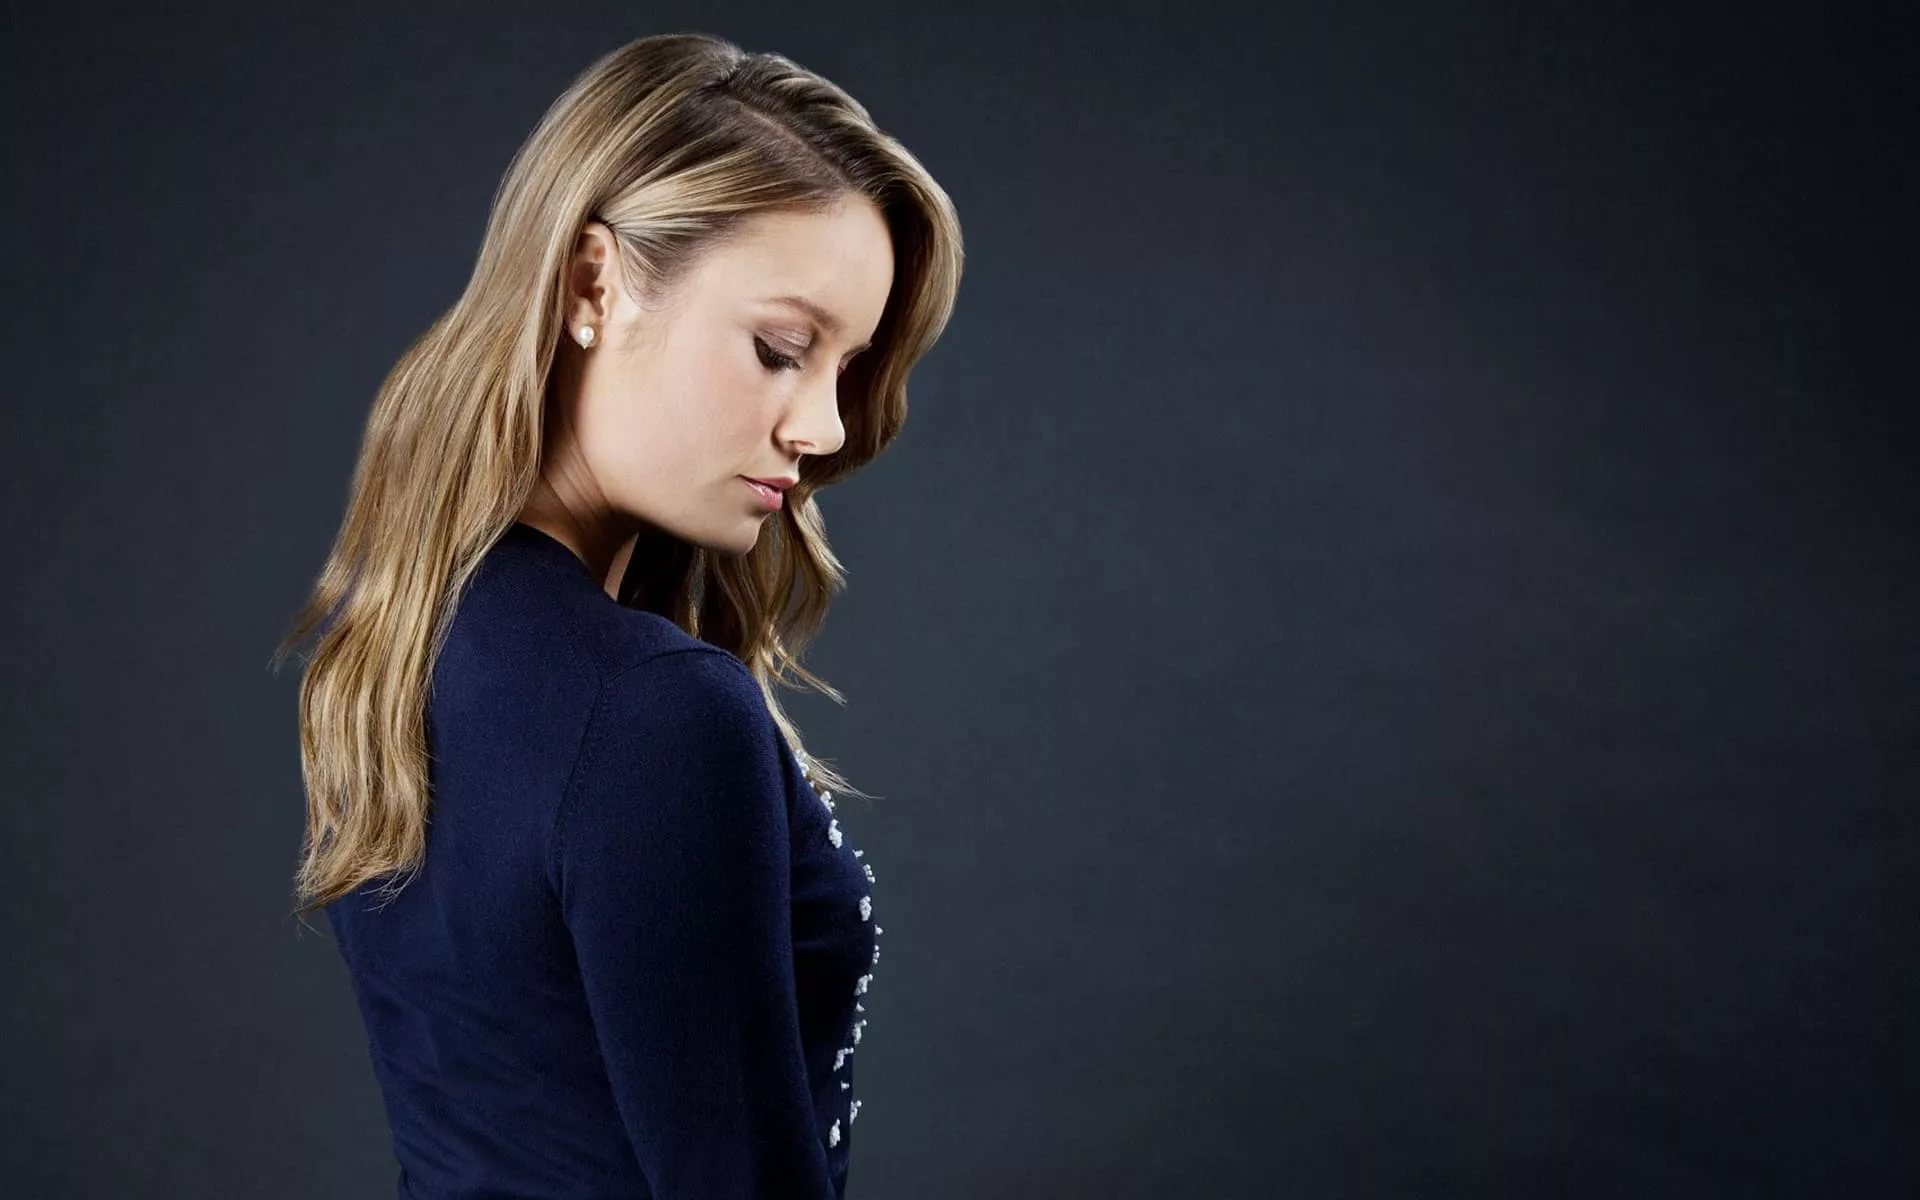 1920x1200 - Brie Larson Wallpapers 14